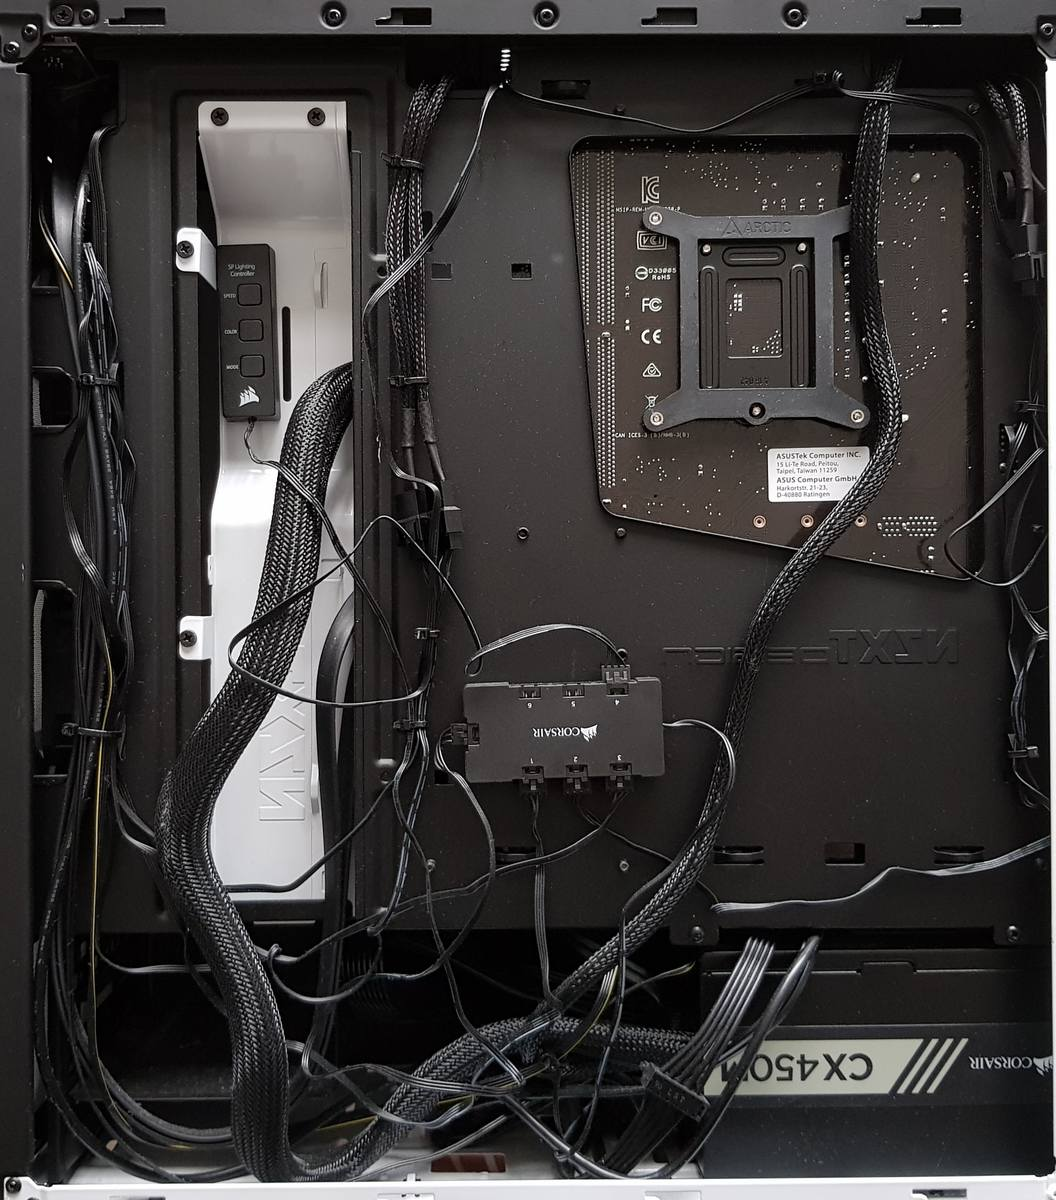 180818 - Rear cable management